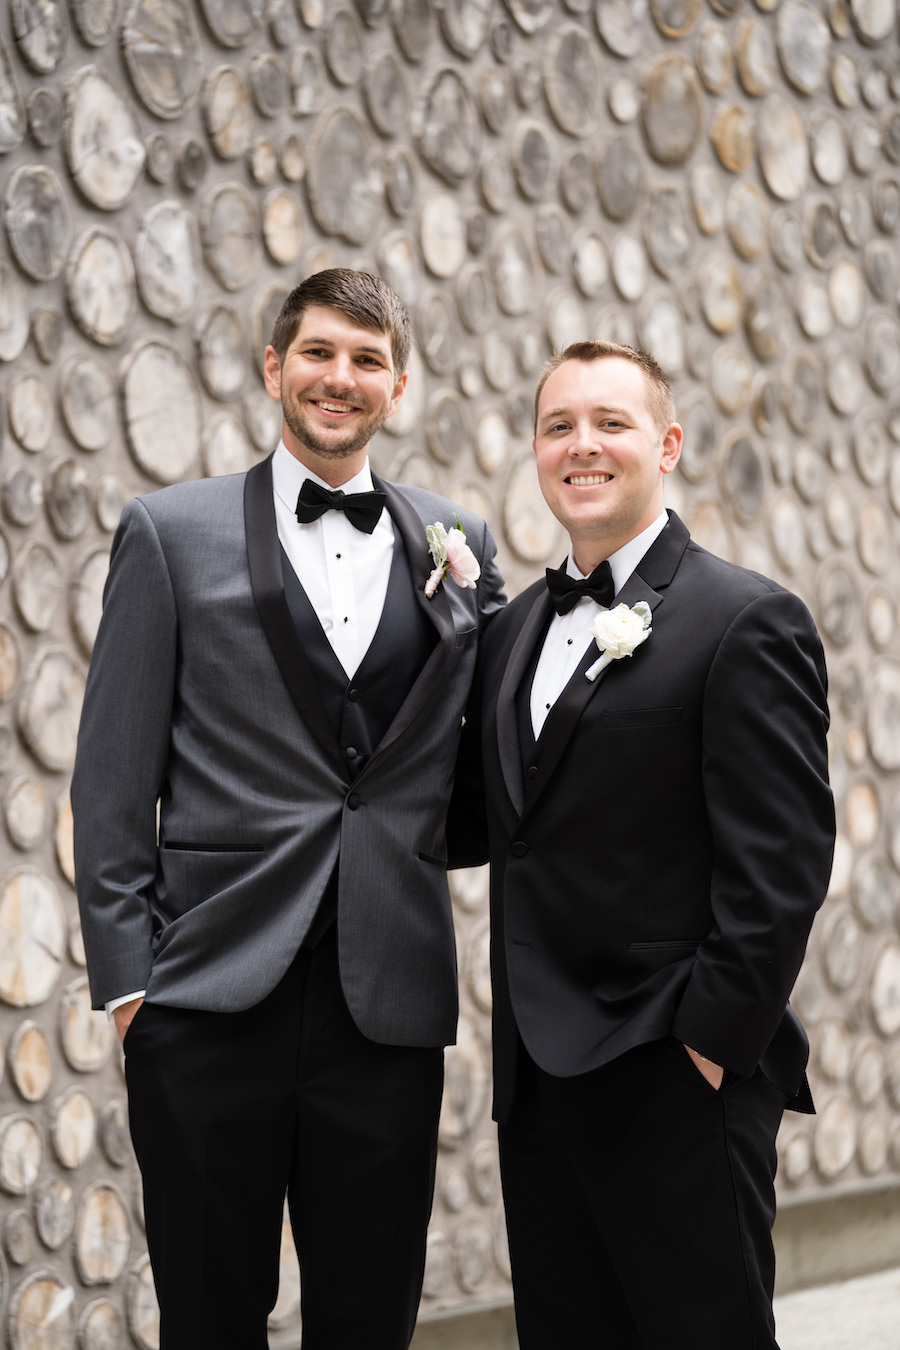 A groom and groomsman smiling before his Kalamazoo, Michigan wedding